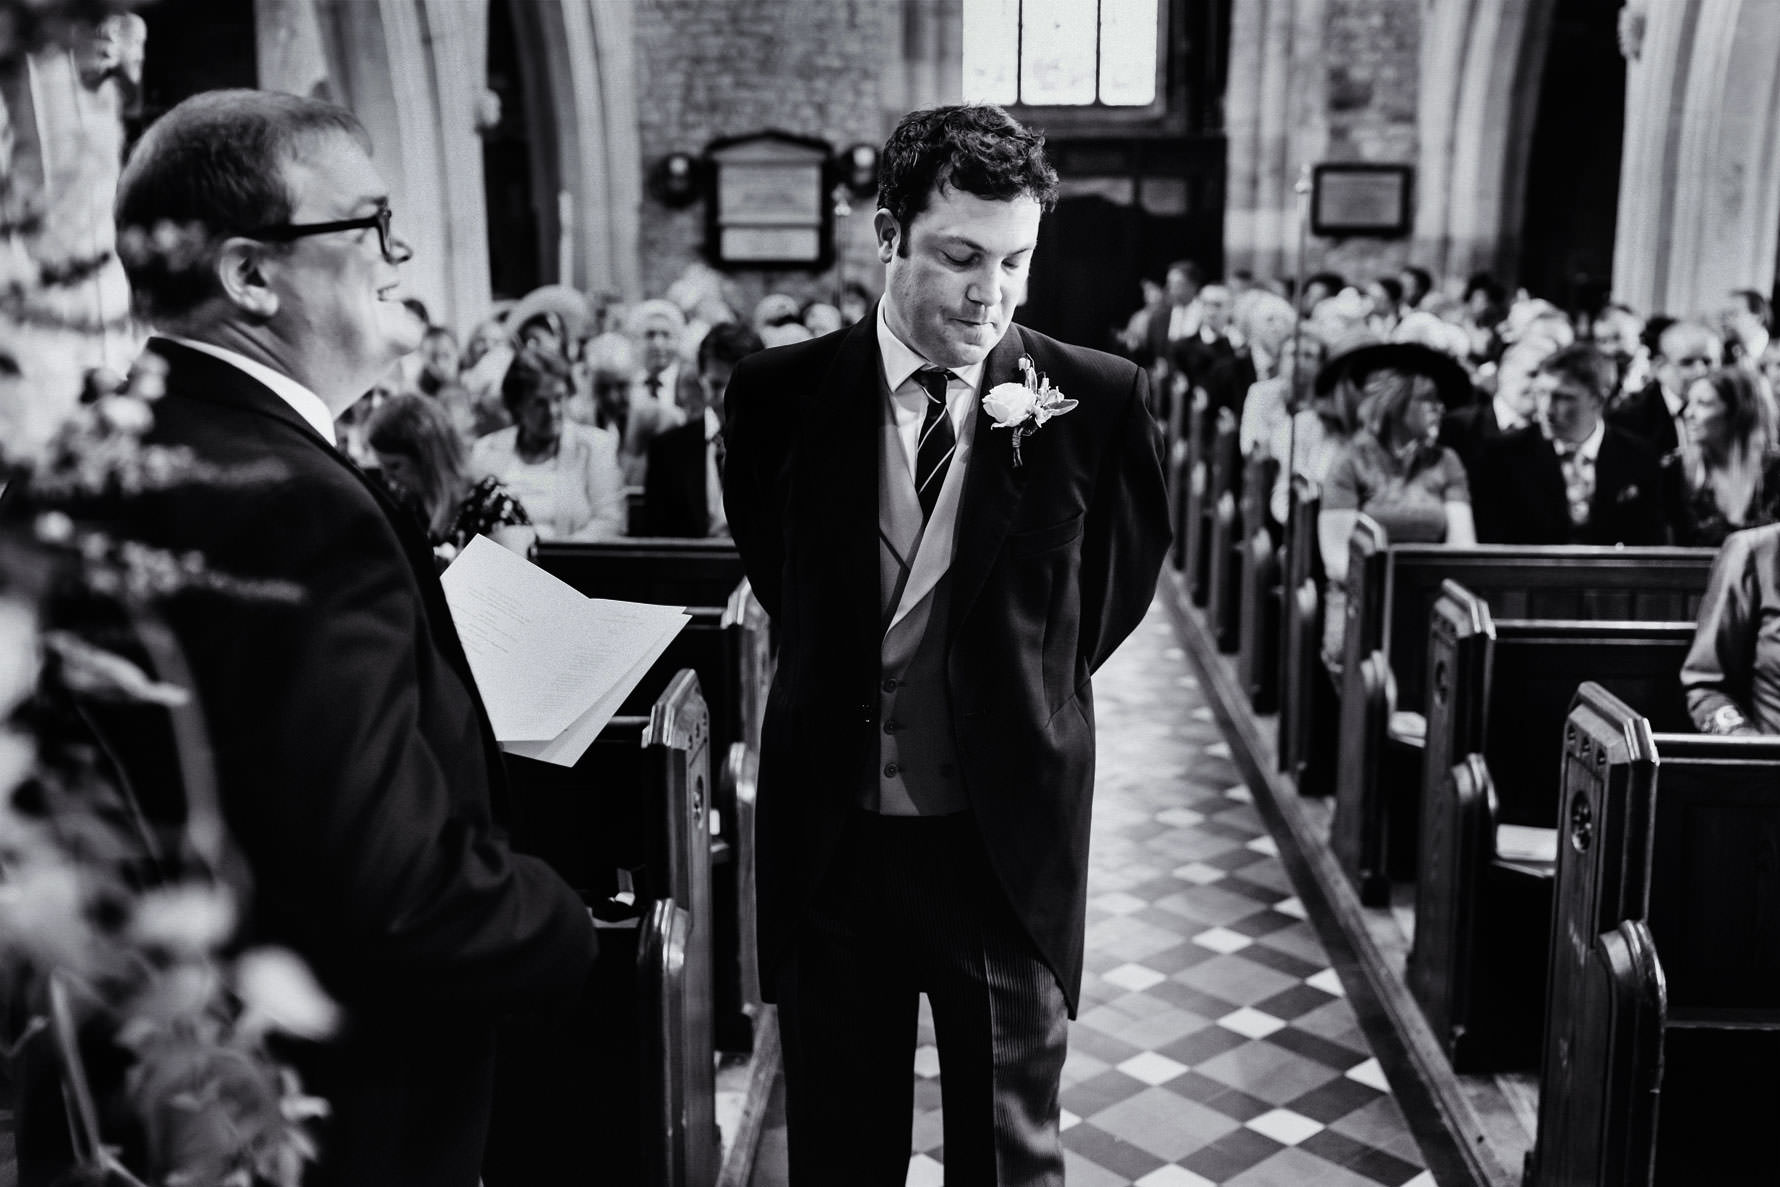 a groom stands nervously waiting for the bride